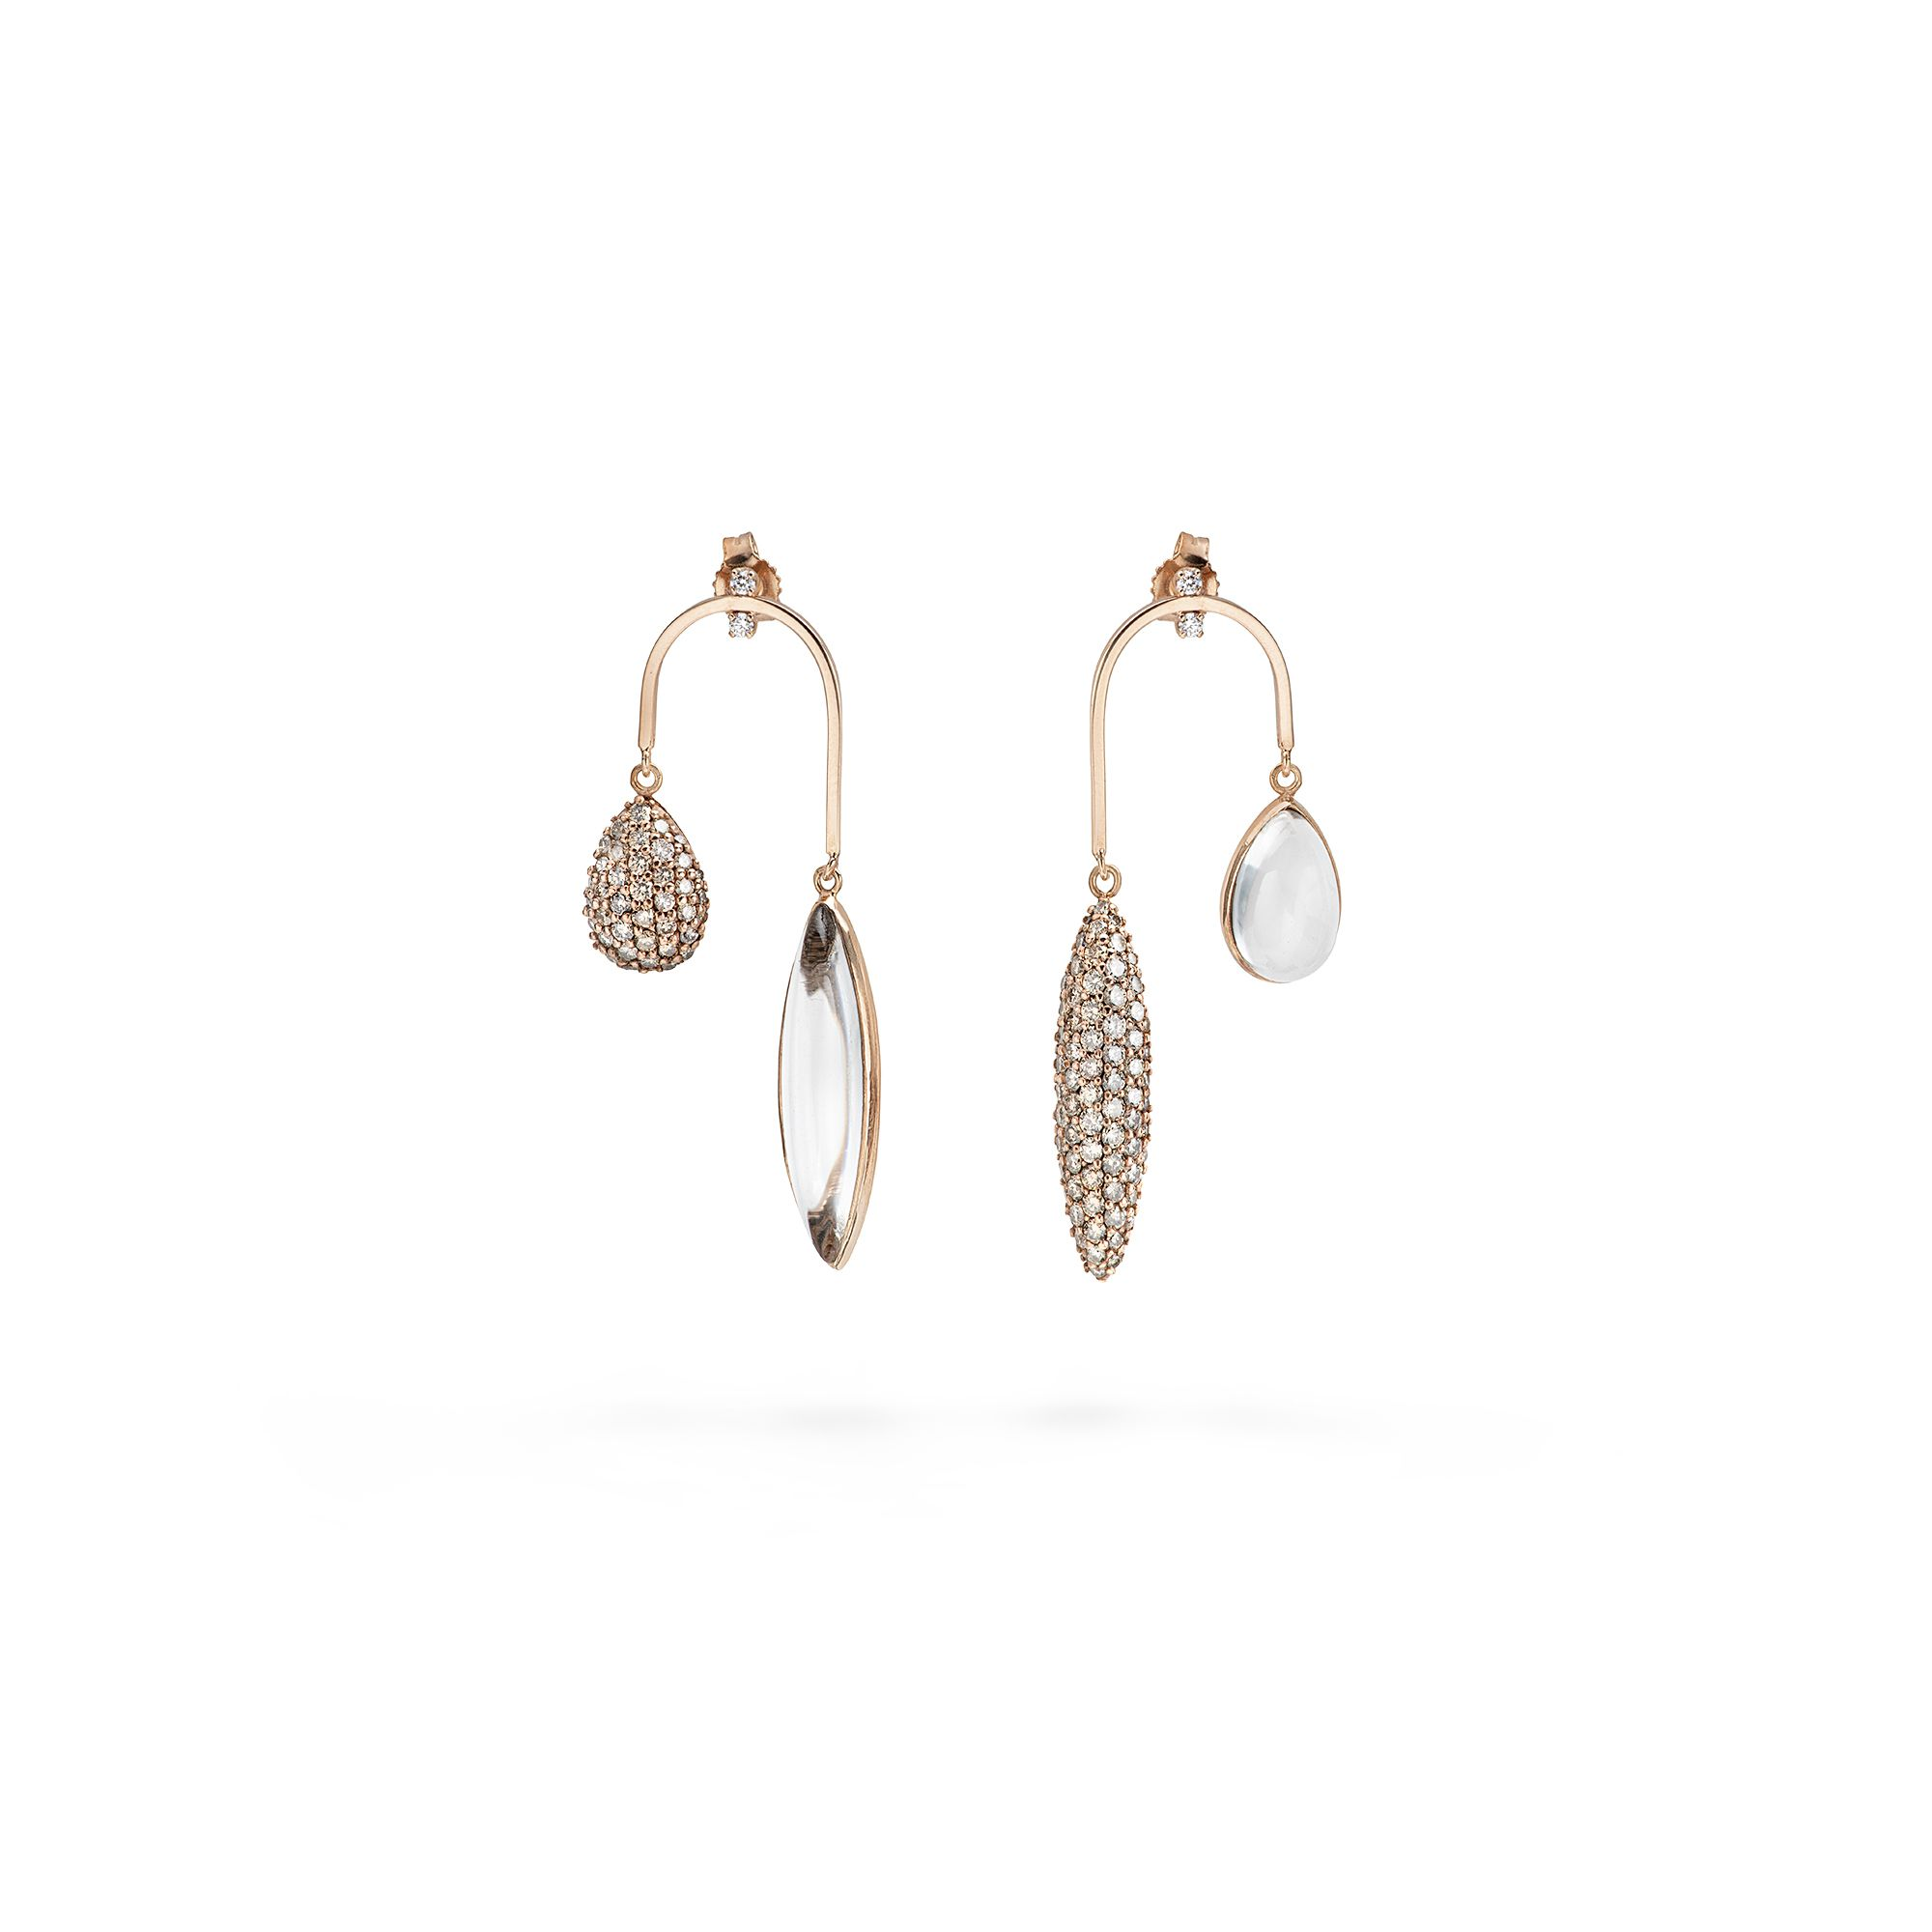 Curved earrings with pavè Rose gold earrings with diamonds